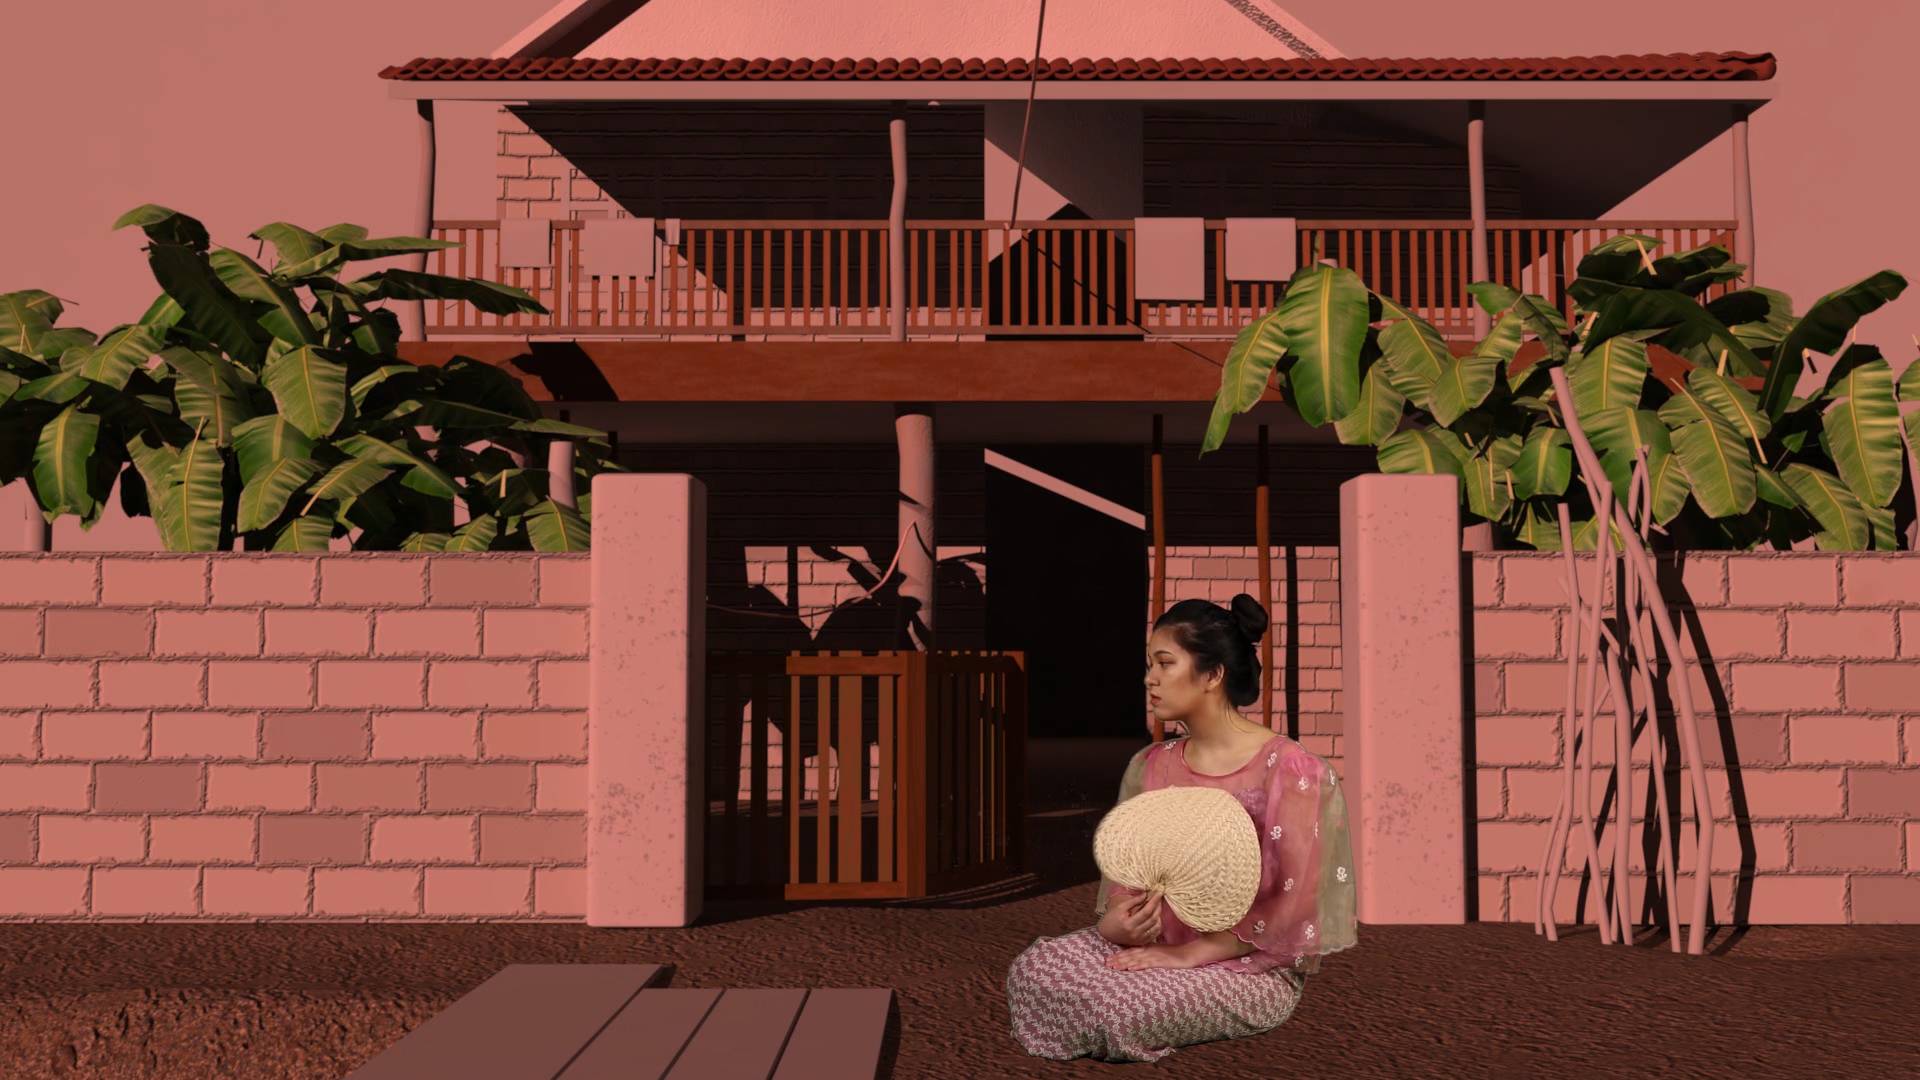 3D Model Rendering by Tristan Espinoza. Modeled after an image of Ibach's Family's Ancestral House in General MacArthur, Eastern Samar, Philippines. Which has now been demolished.